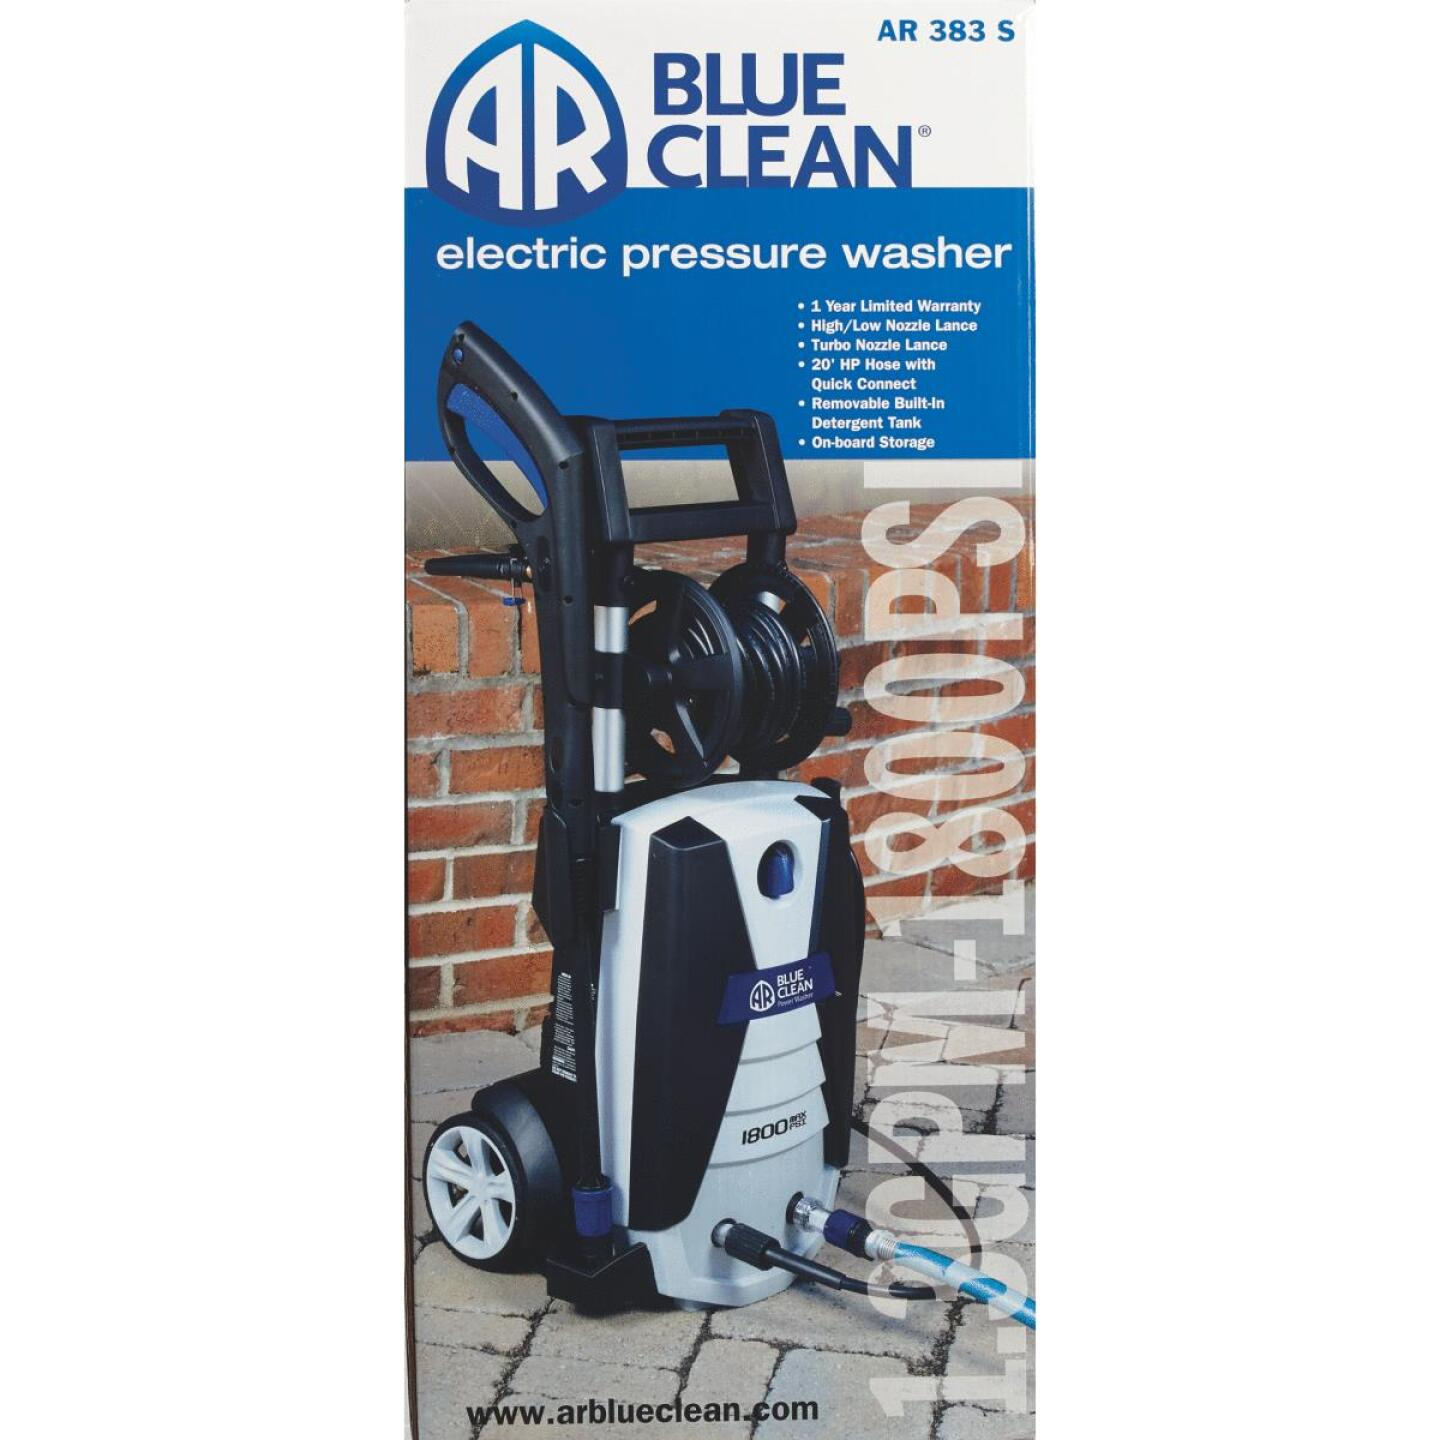 AR Blue Clean 1800 psi 1.3 GPM Cold Water Electric Pressure Washer Image 2